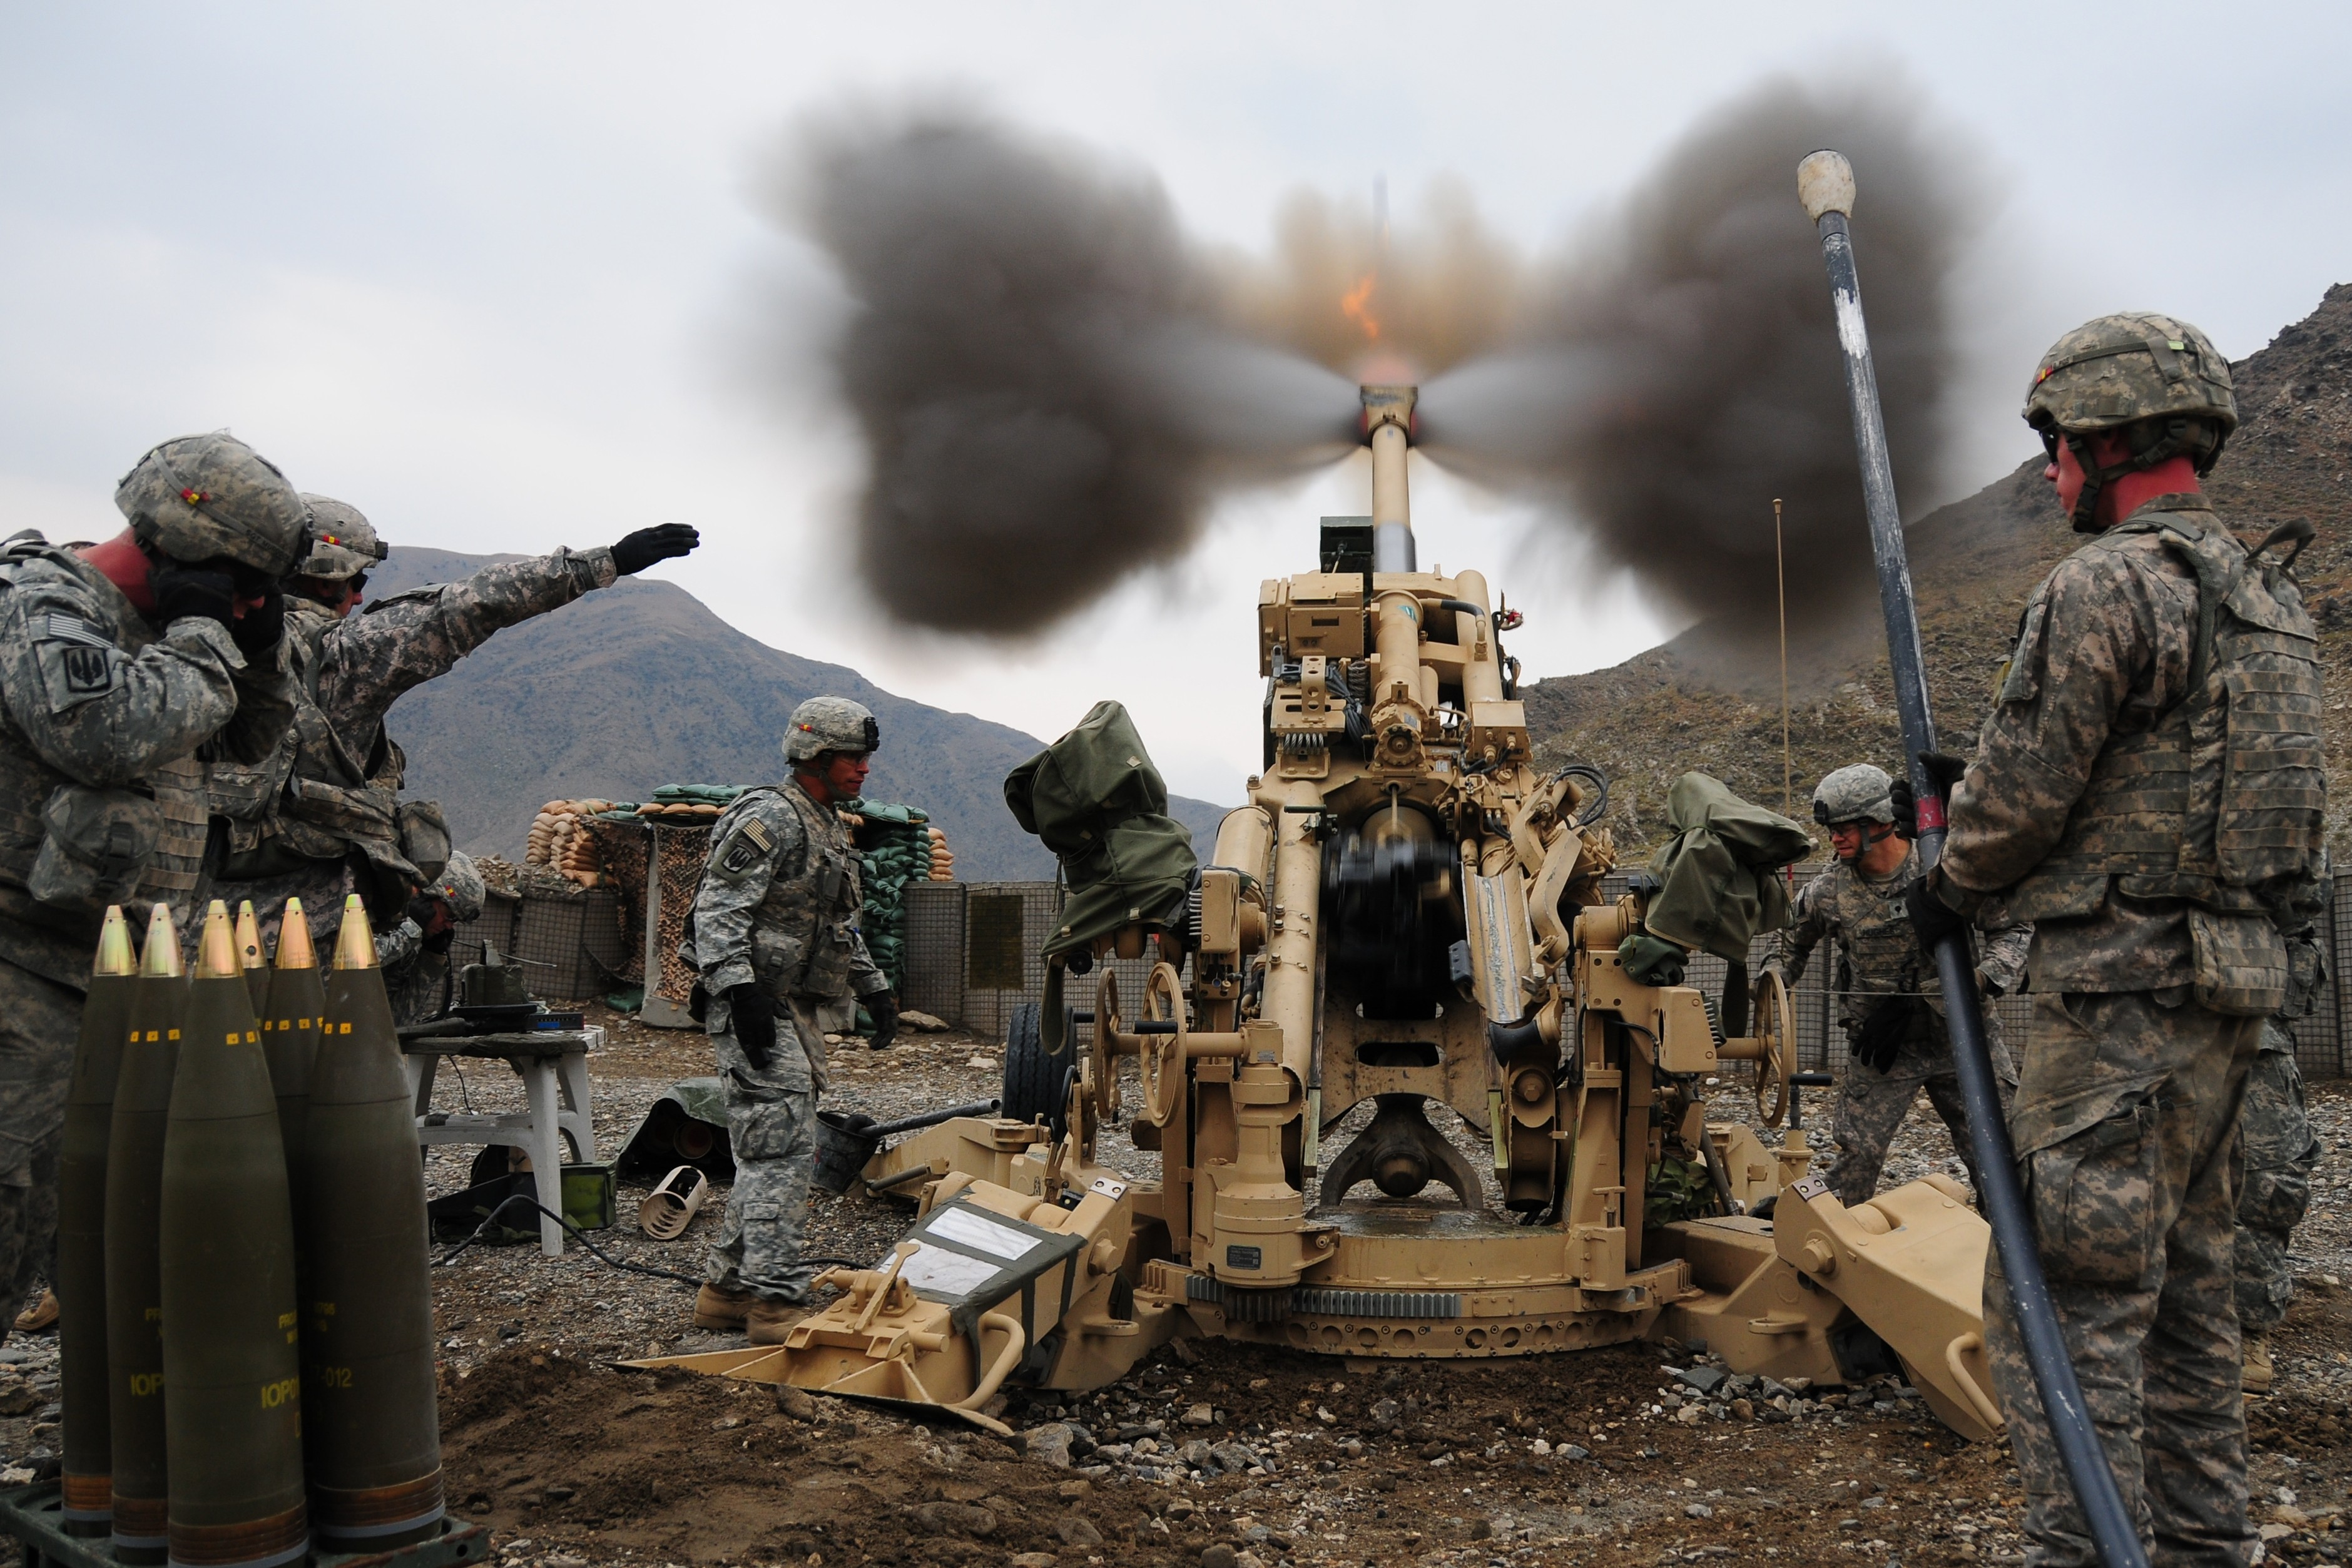 M777 Artillery Firing - Military Pictures - Air Force Army Navy ...